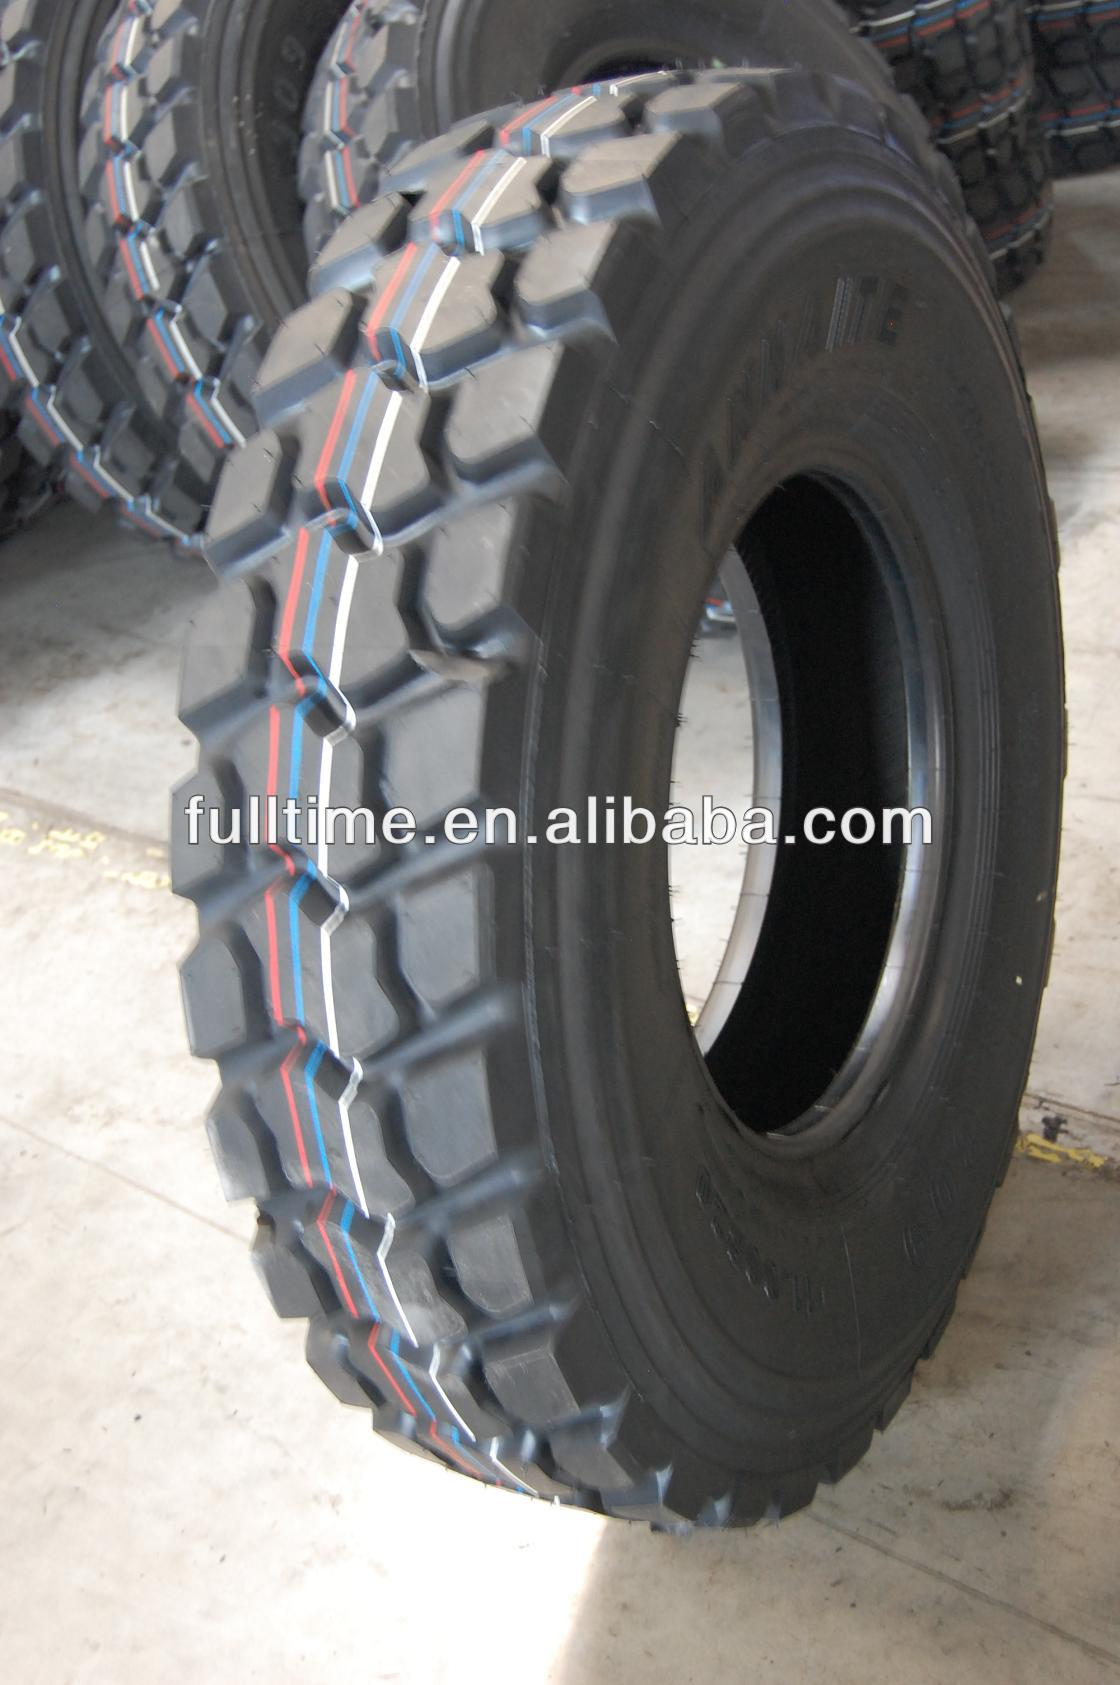 qiangwei brand tires 1200r24 truck for Coalmine and mountainous region